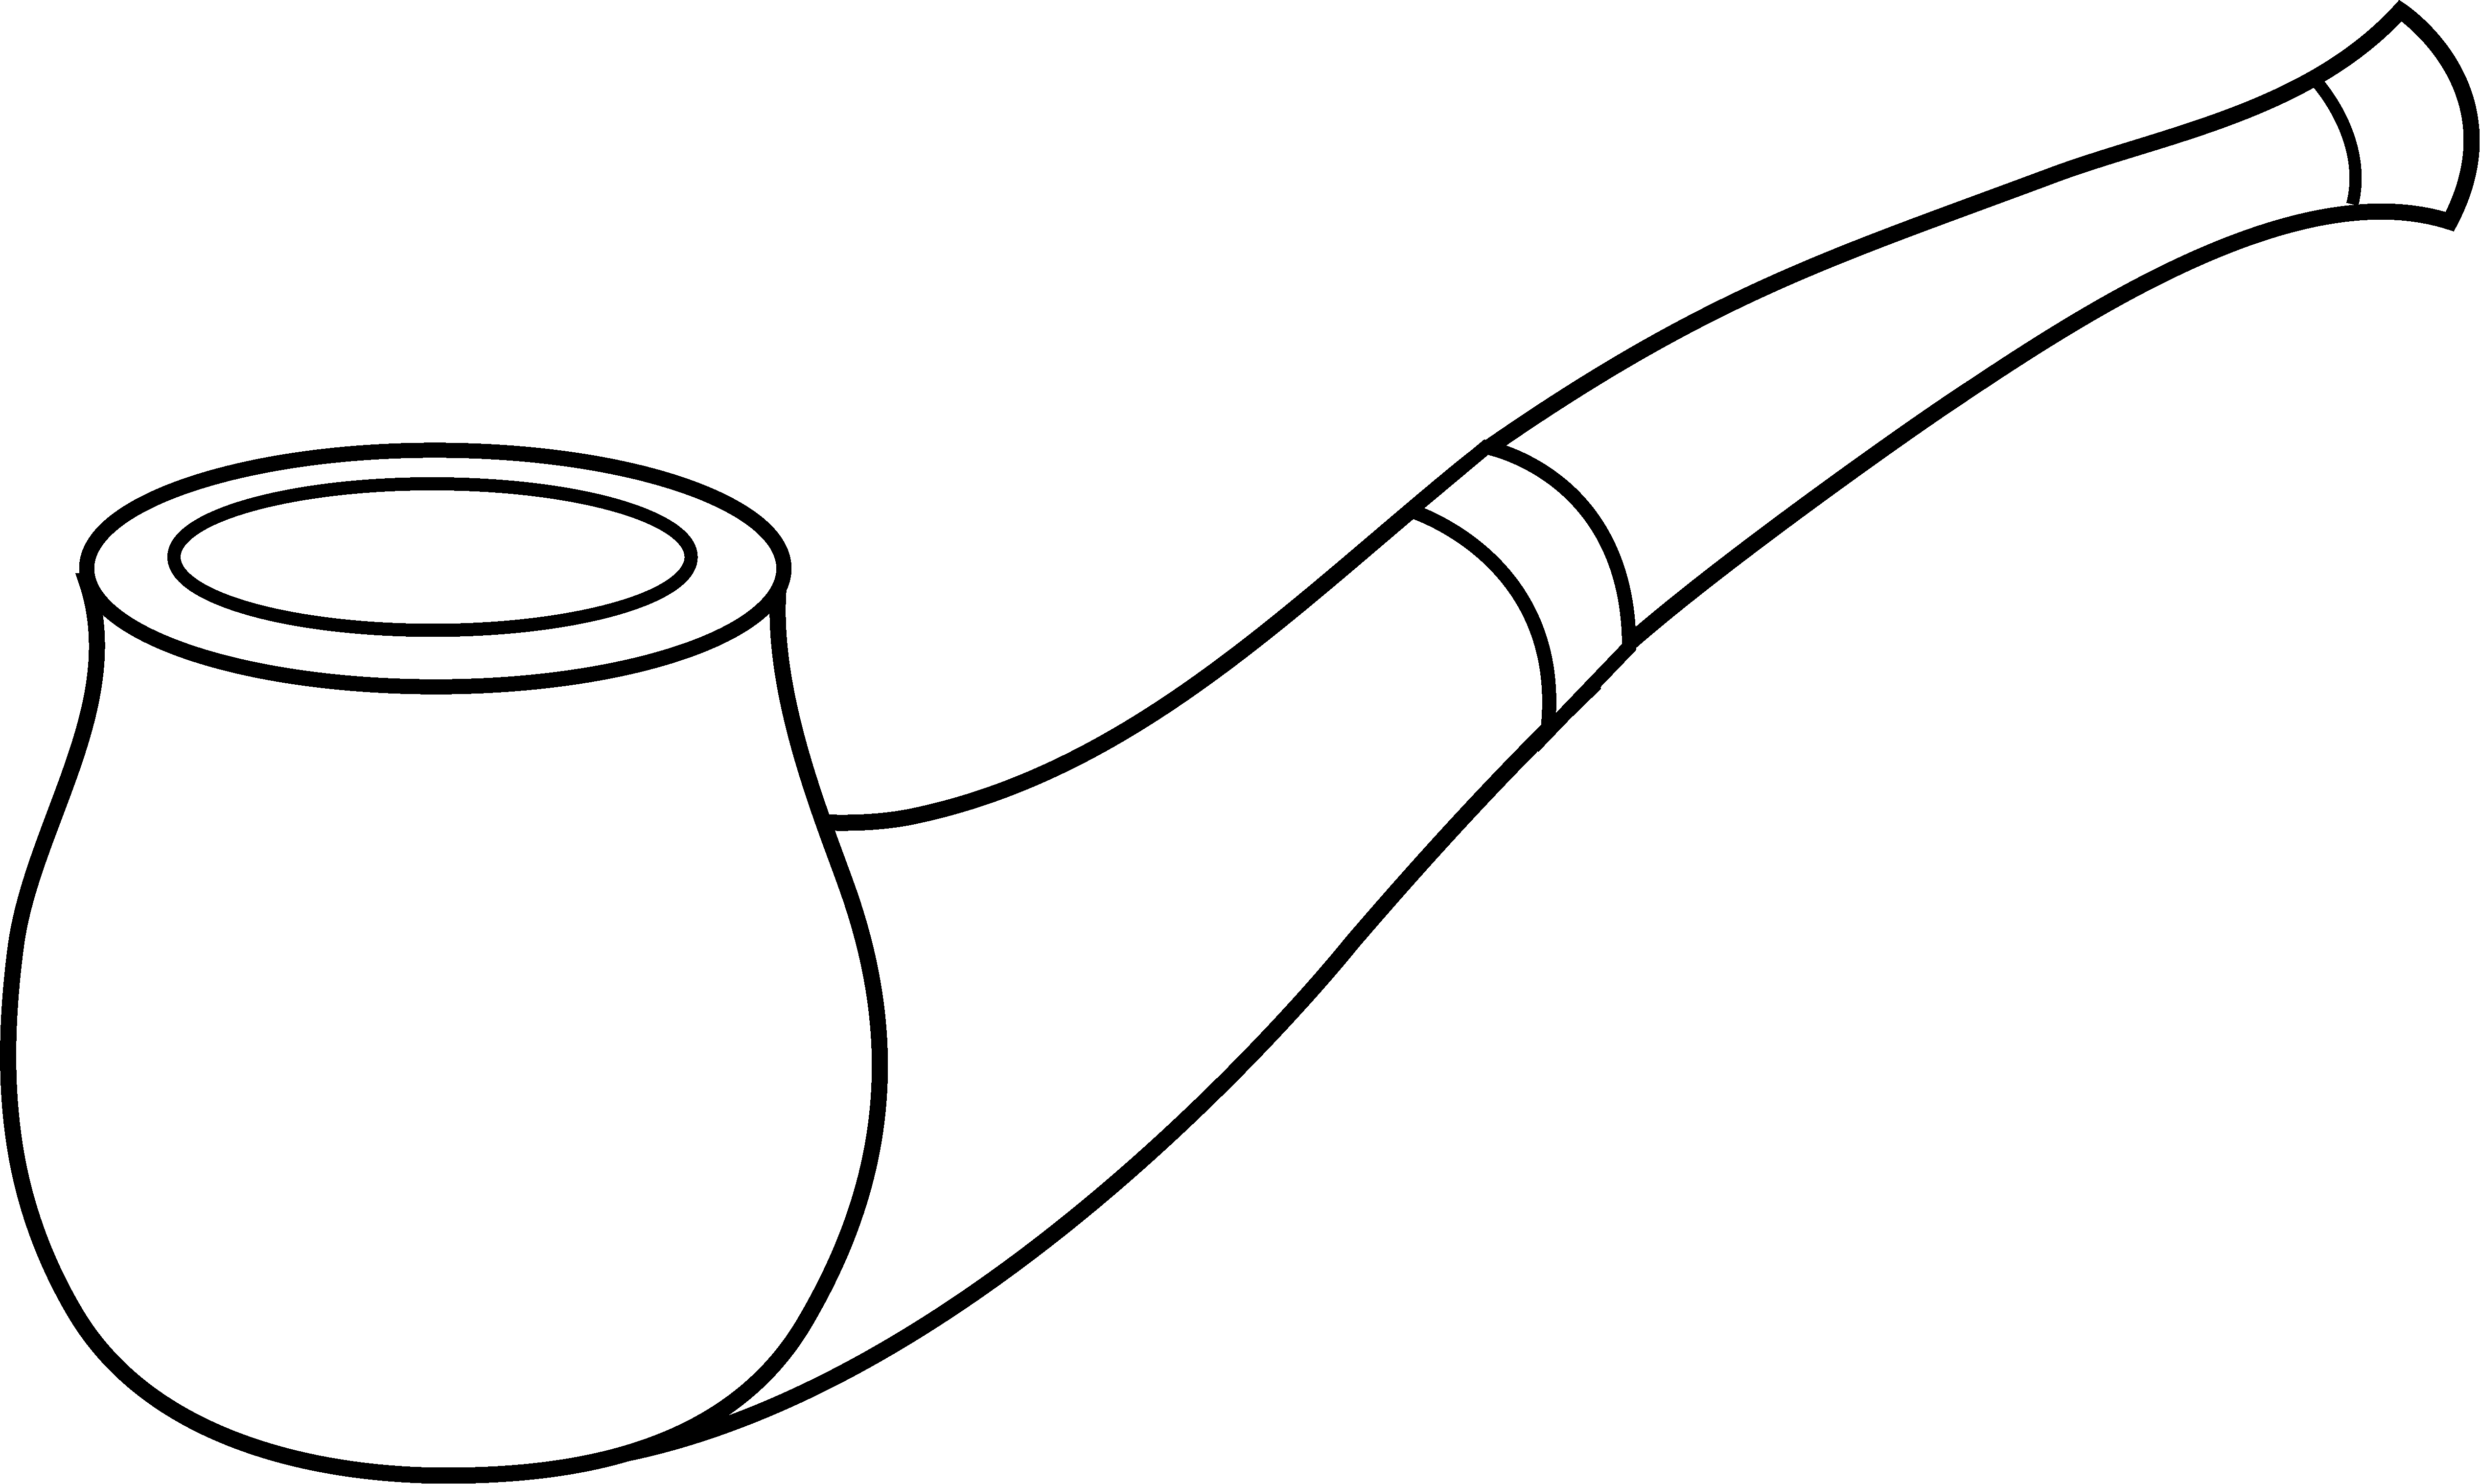 Line art drawing free. Pipe clipart construction